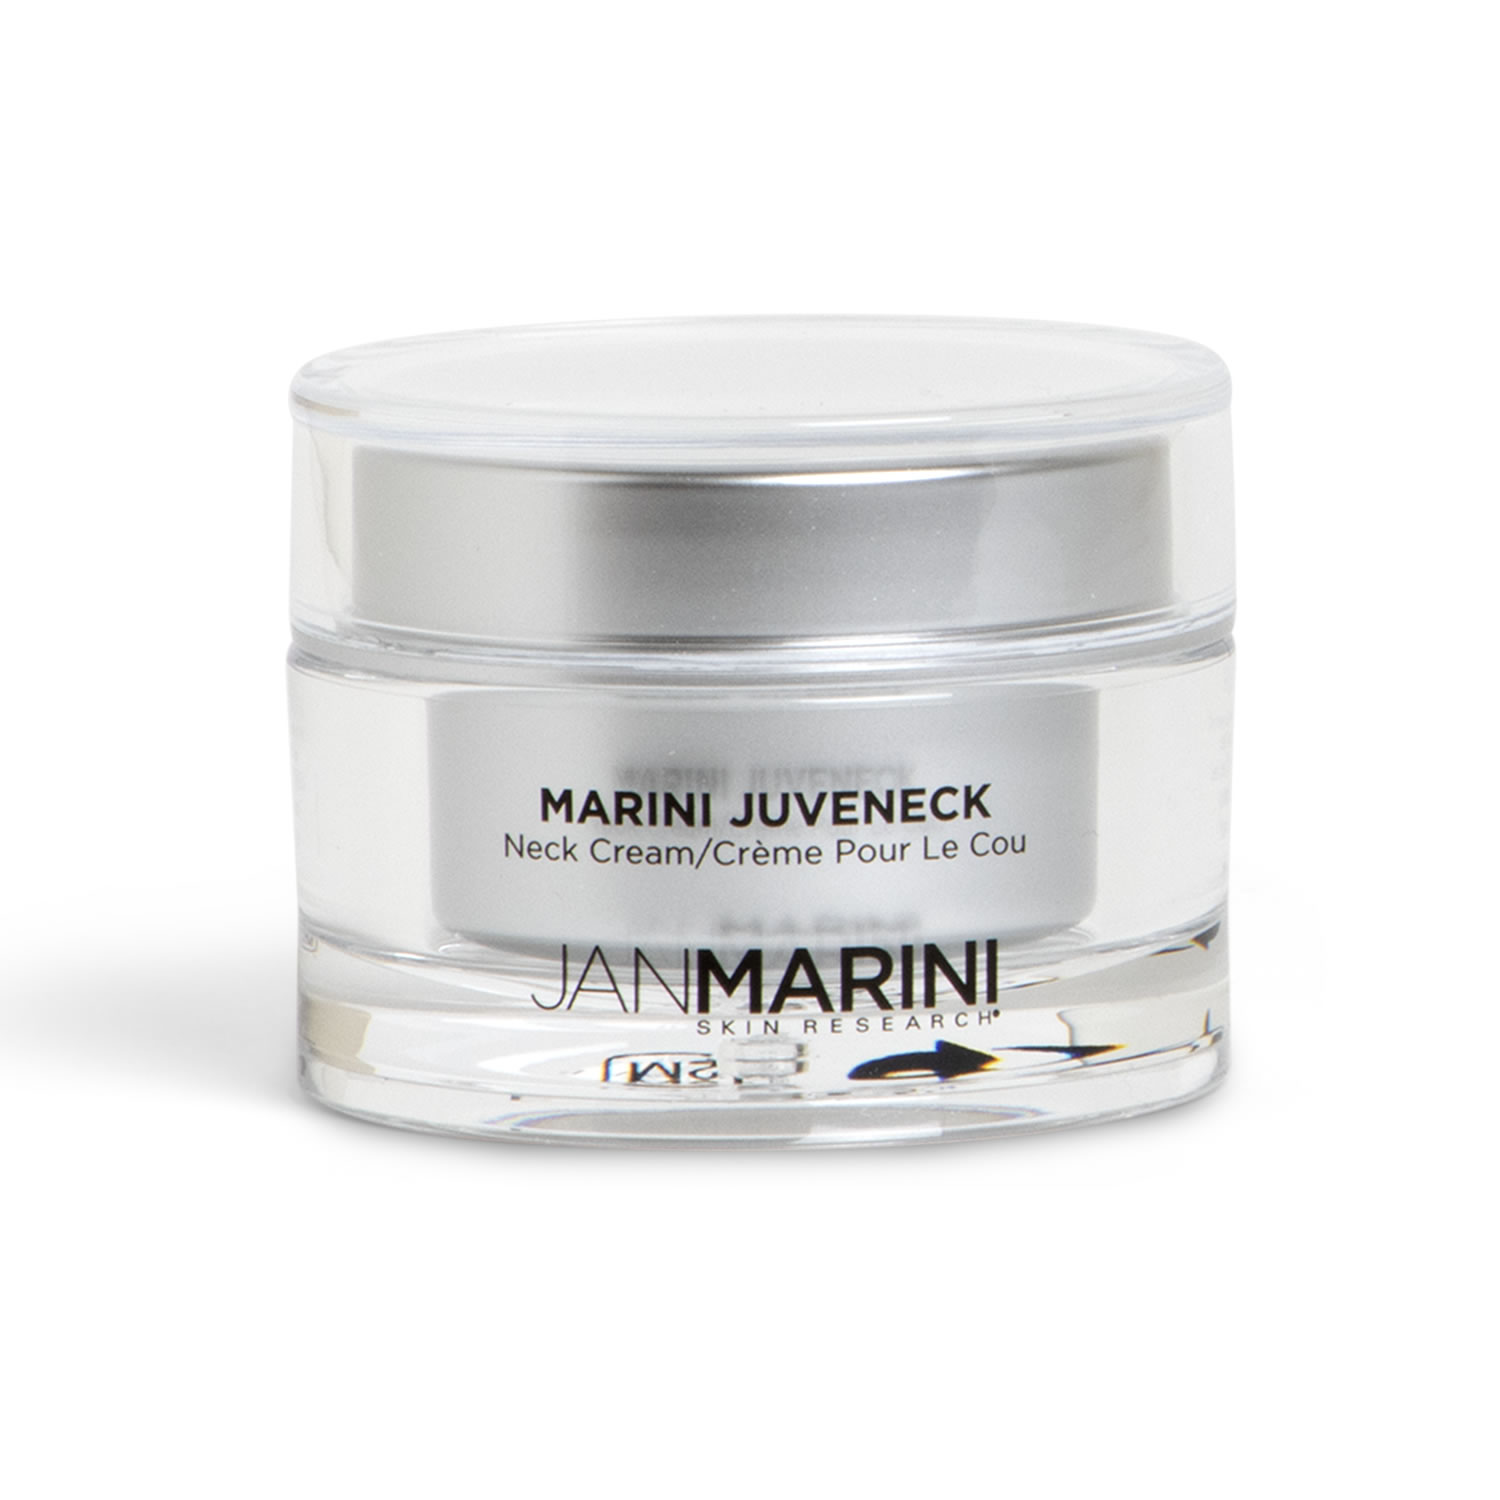 Jan_Marini_MARINI_JUVENECK_NECK_CREAM_57_g__2_oz